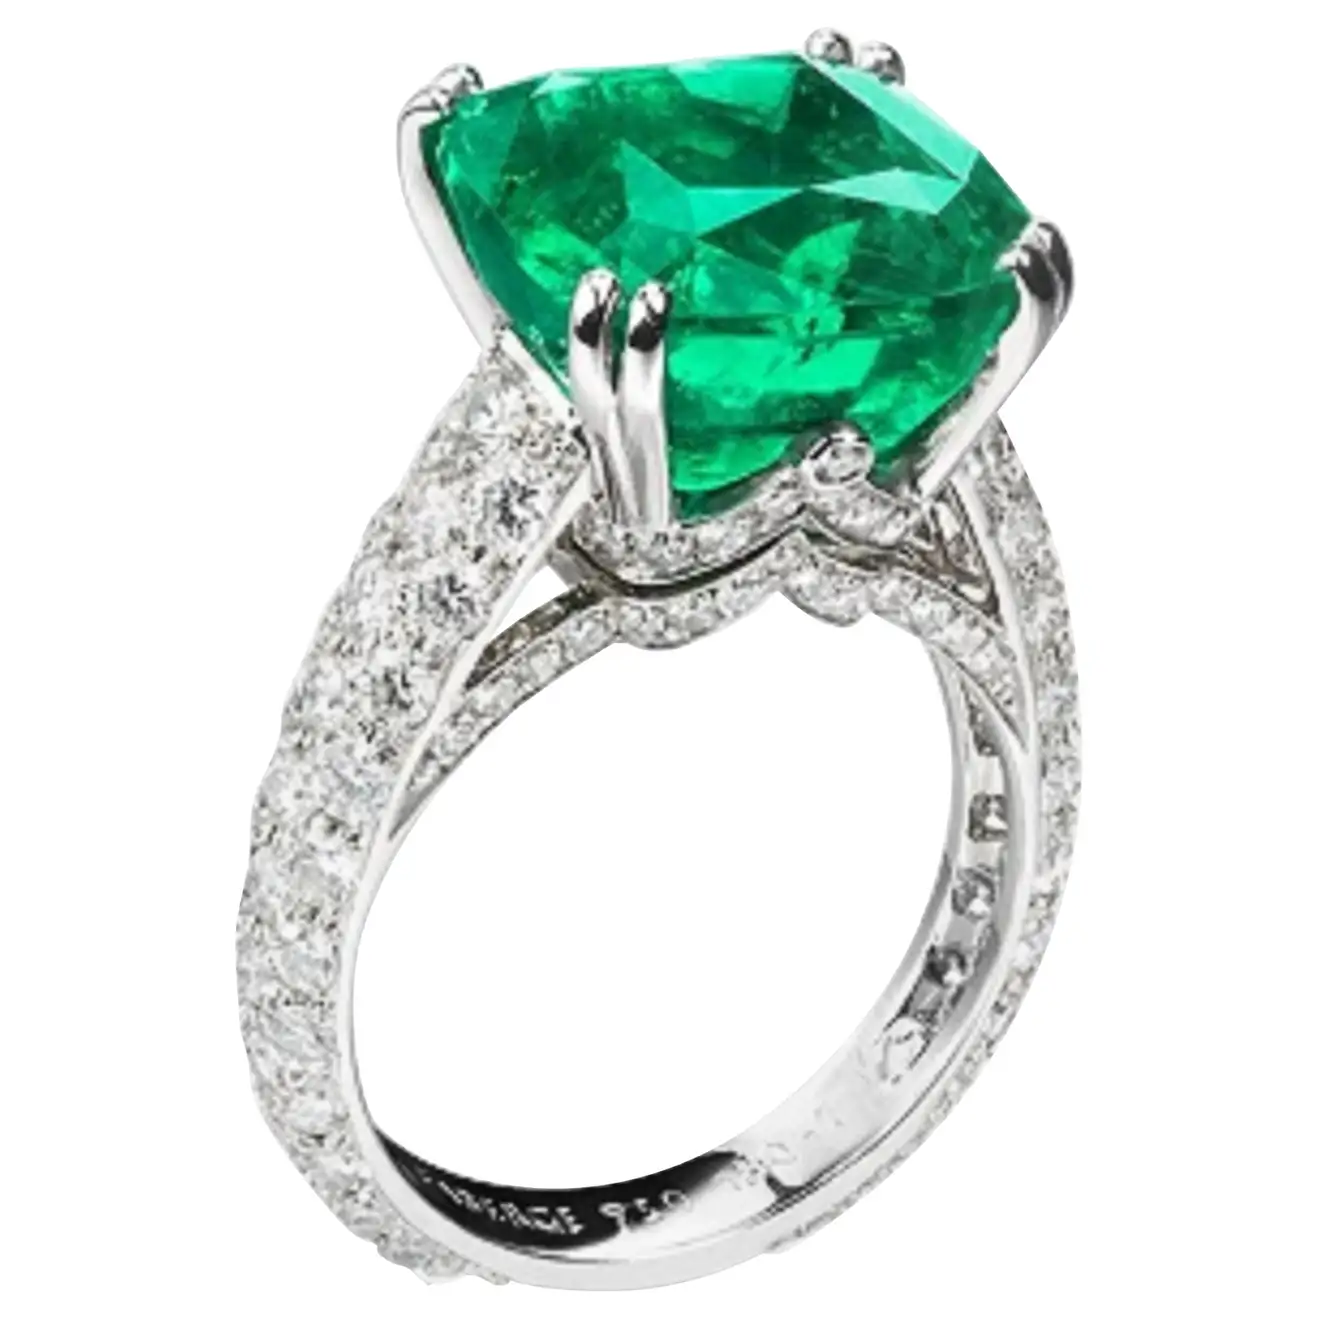 Best massive bling rings 2021 Three Colours of Love Emerald and Diamond Ring